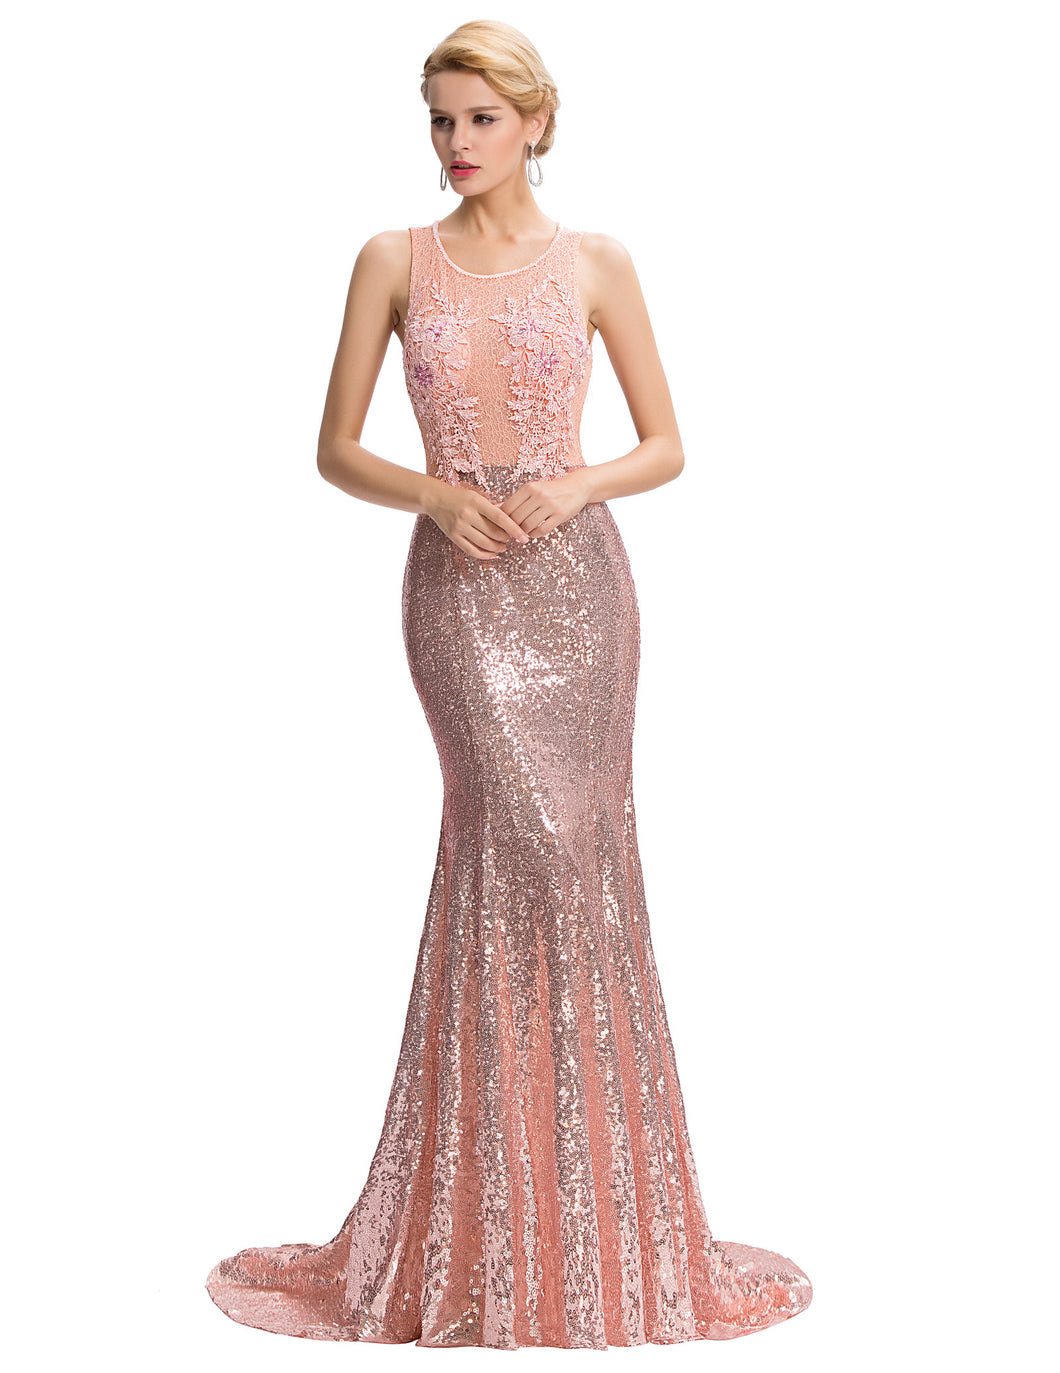 GK411 - Ladies Long Rose Gold Sequence Formal Wear